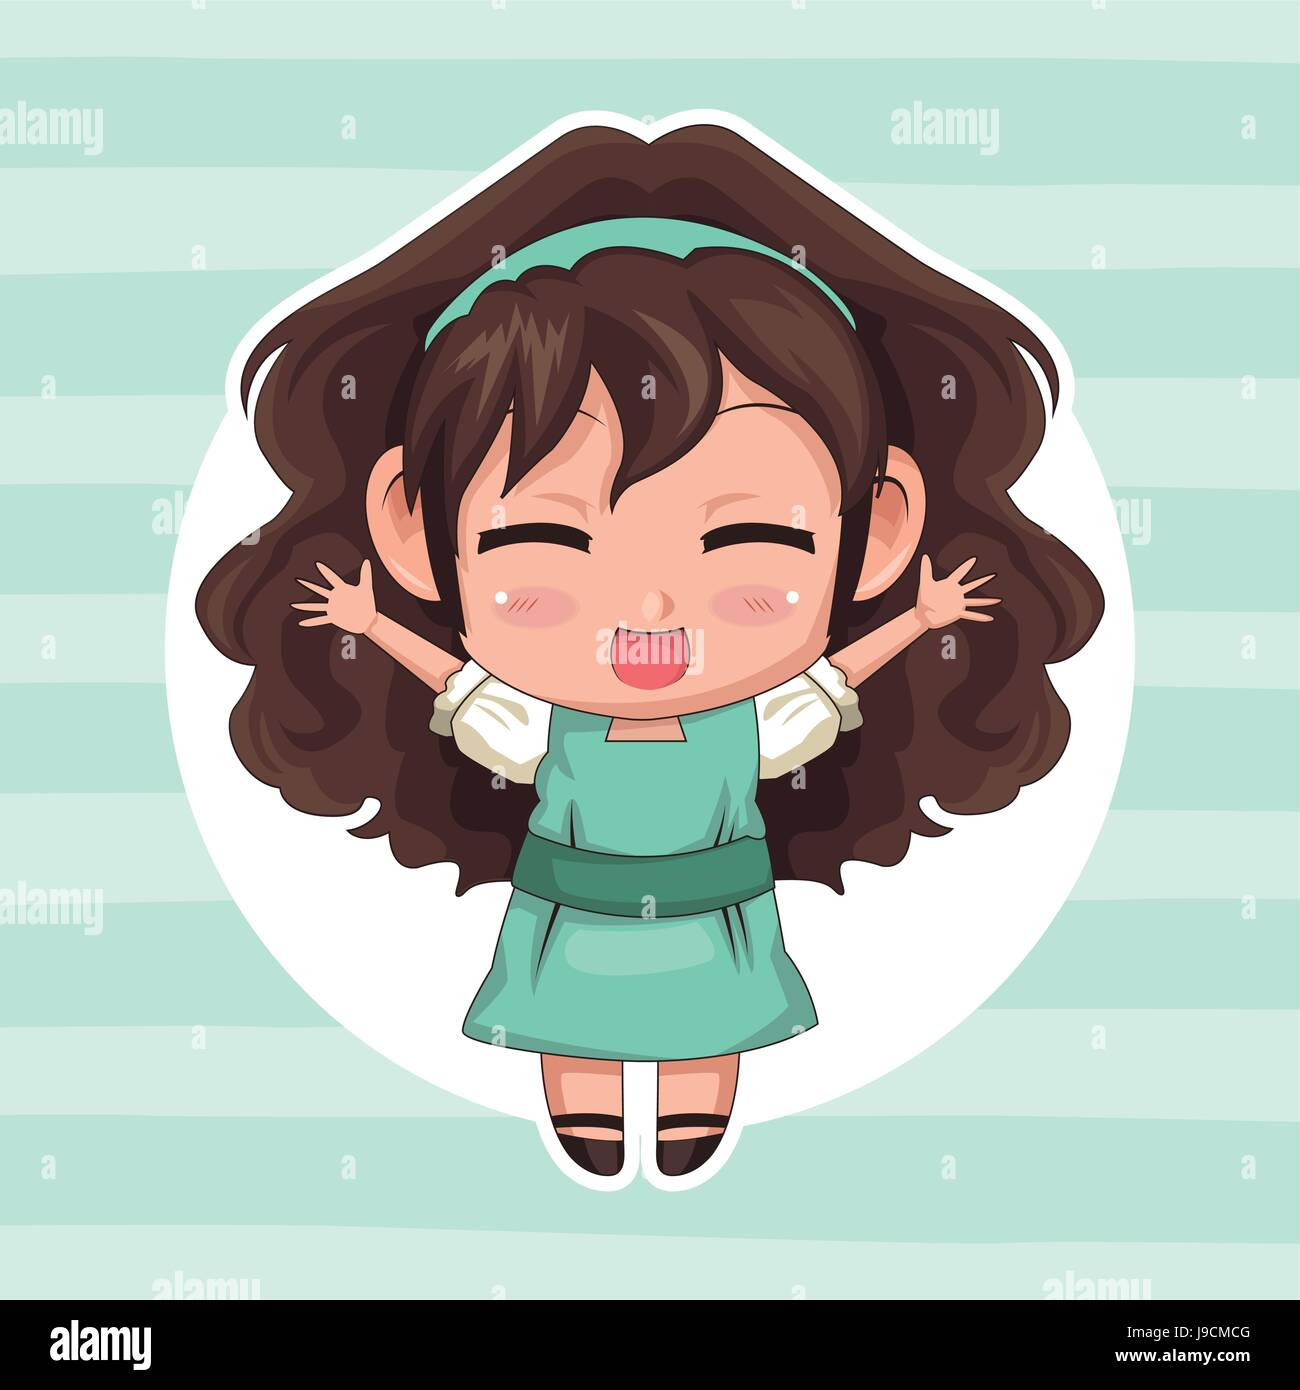 Blue striped color background with circular frame and cute anime girl wink expression open arms with curly hairstyle